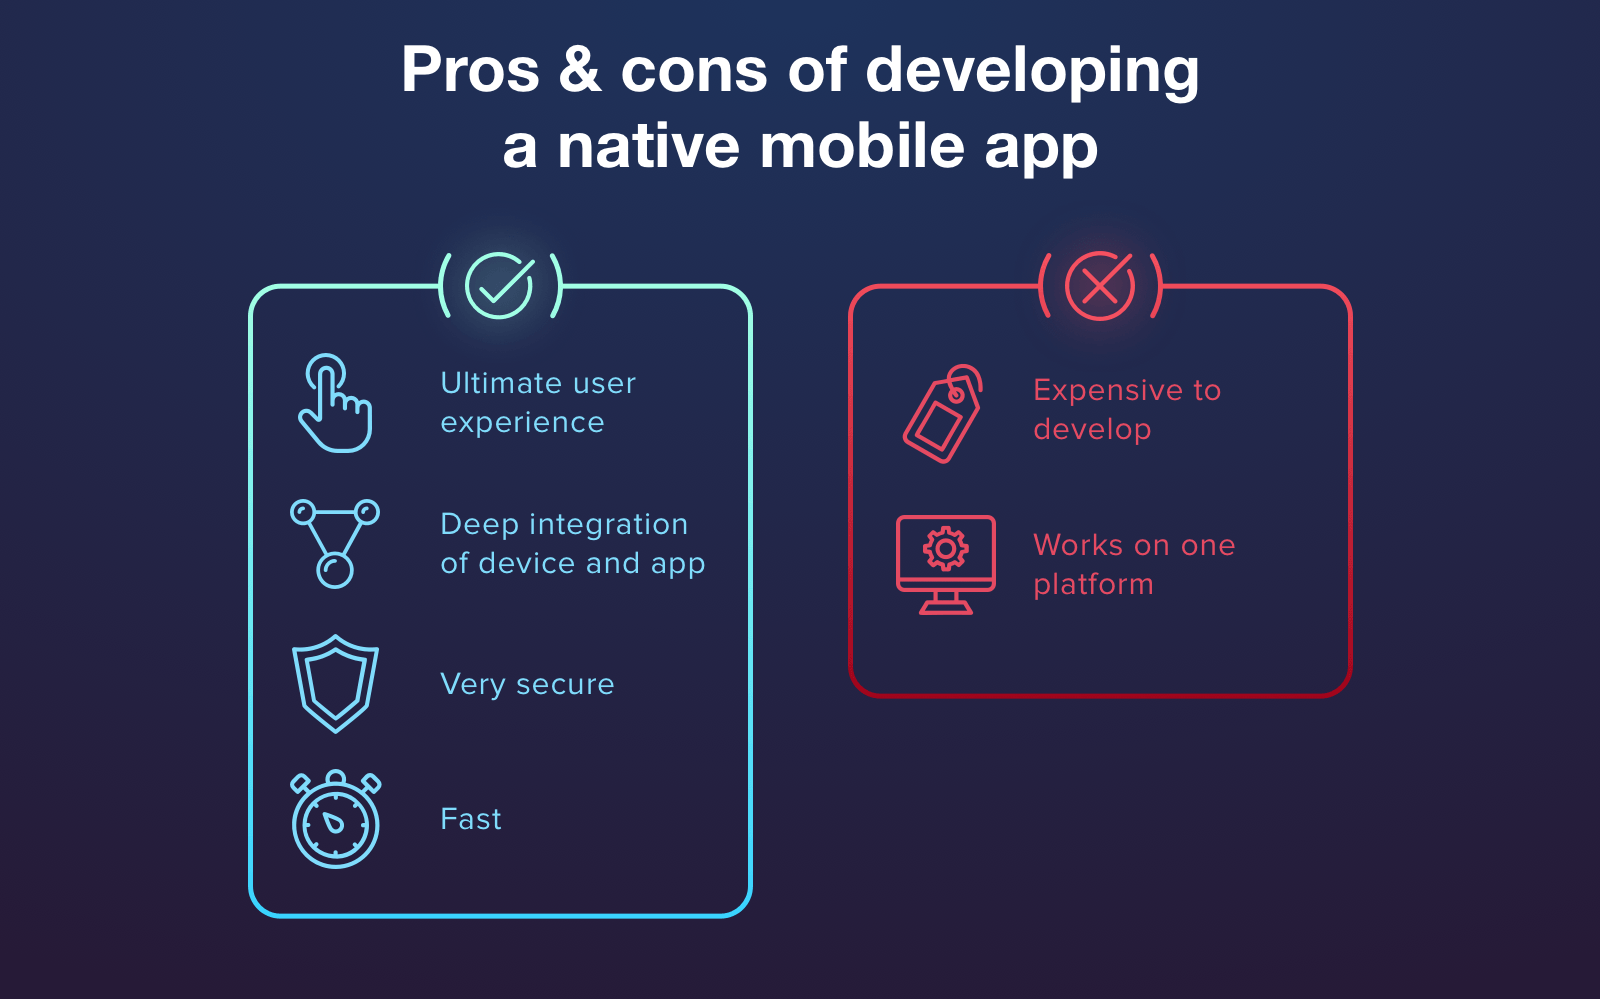 Advantages and disadvantages of native app development approach and mobile app stack for it